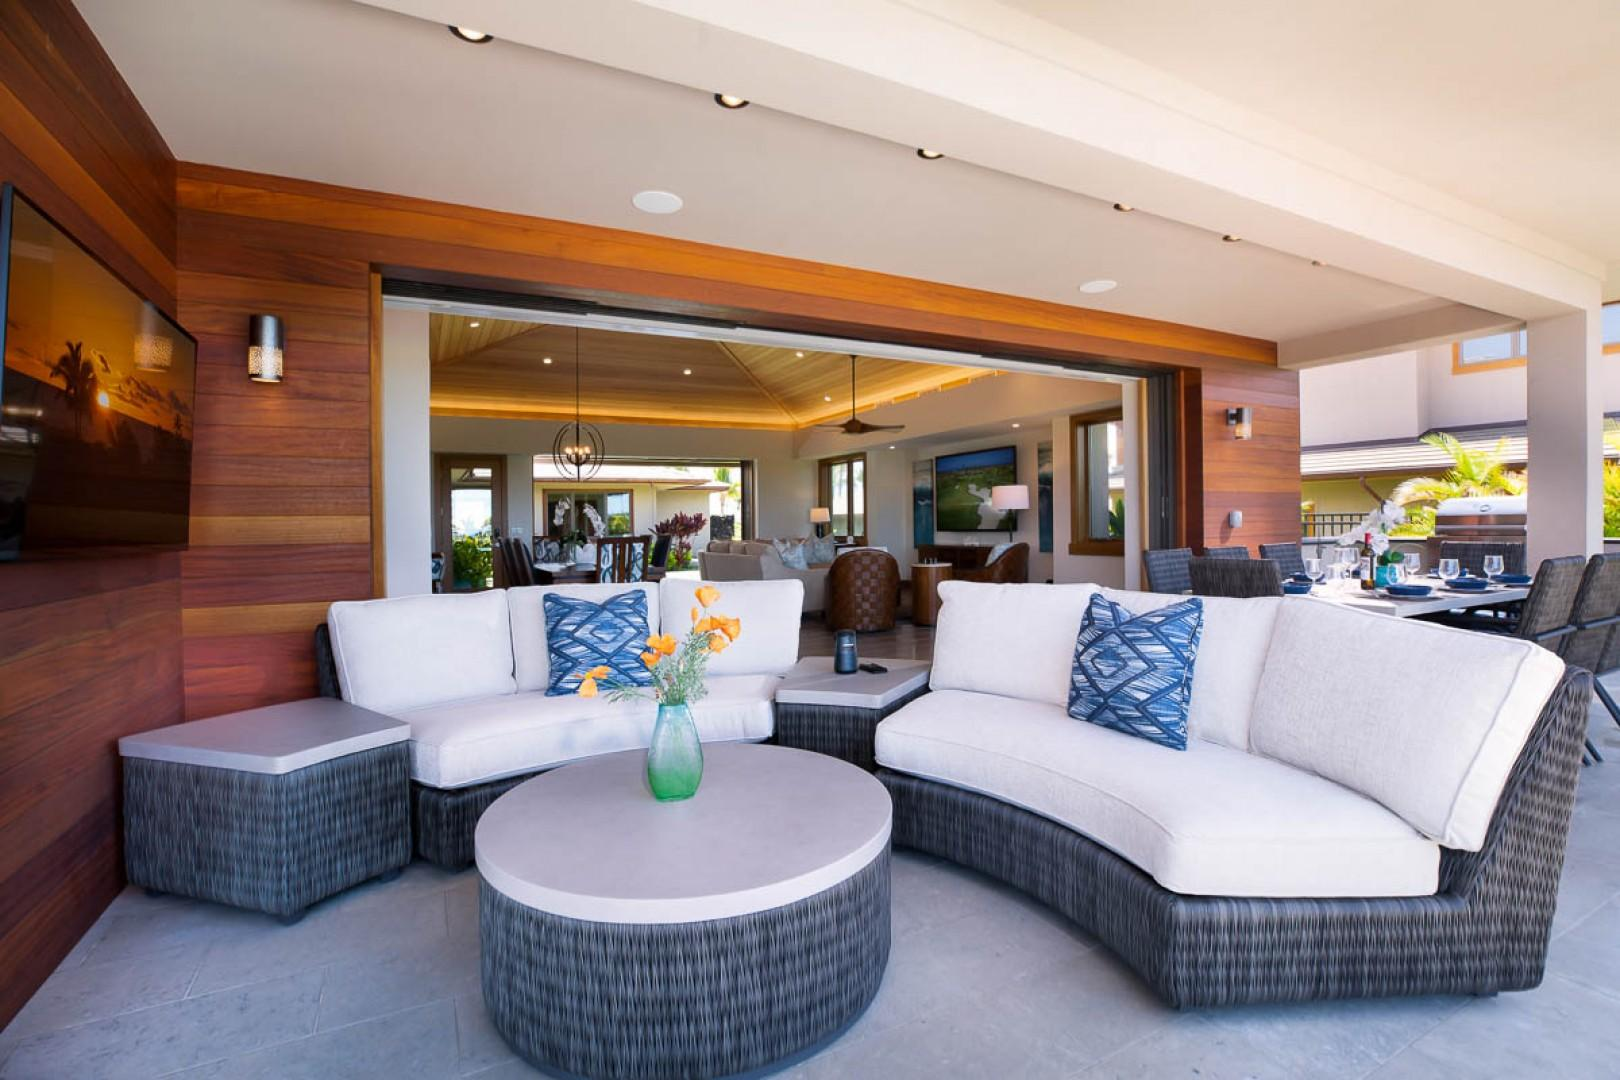 Lounge in style